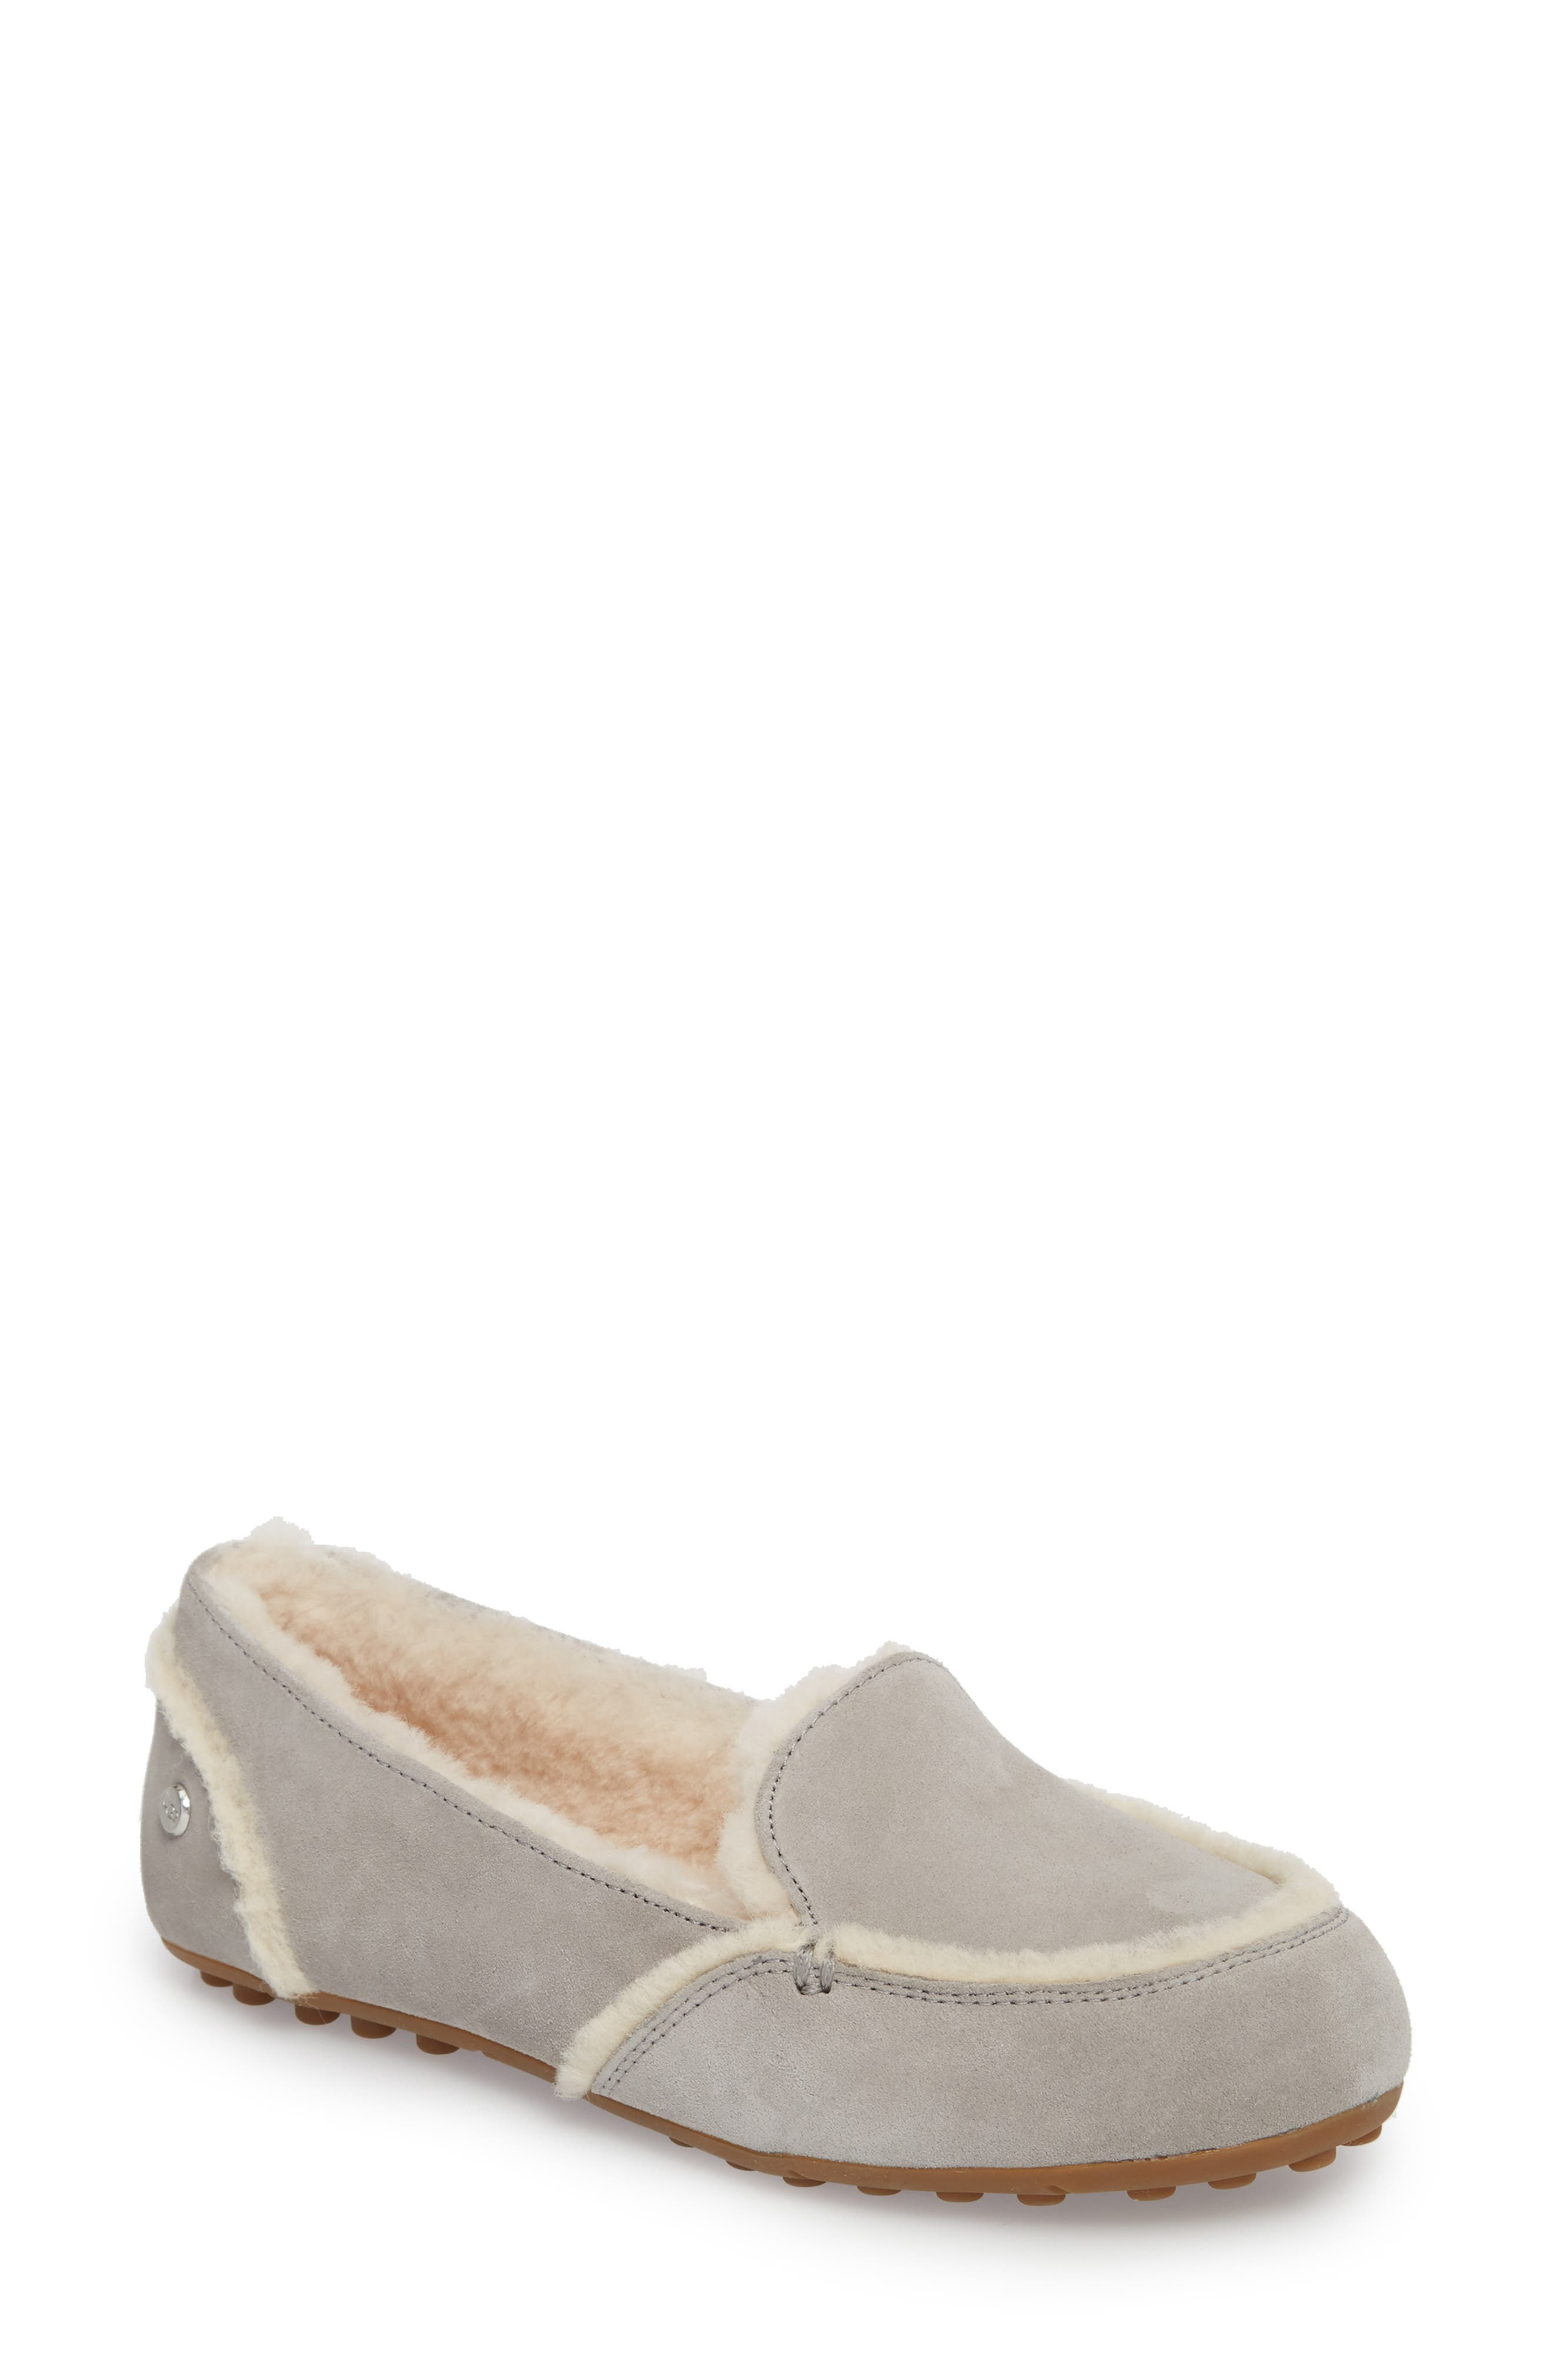 Hailey Slipper,                         Main,                         color, GREY SUEDE